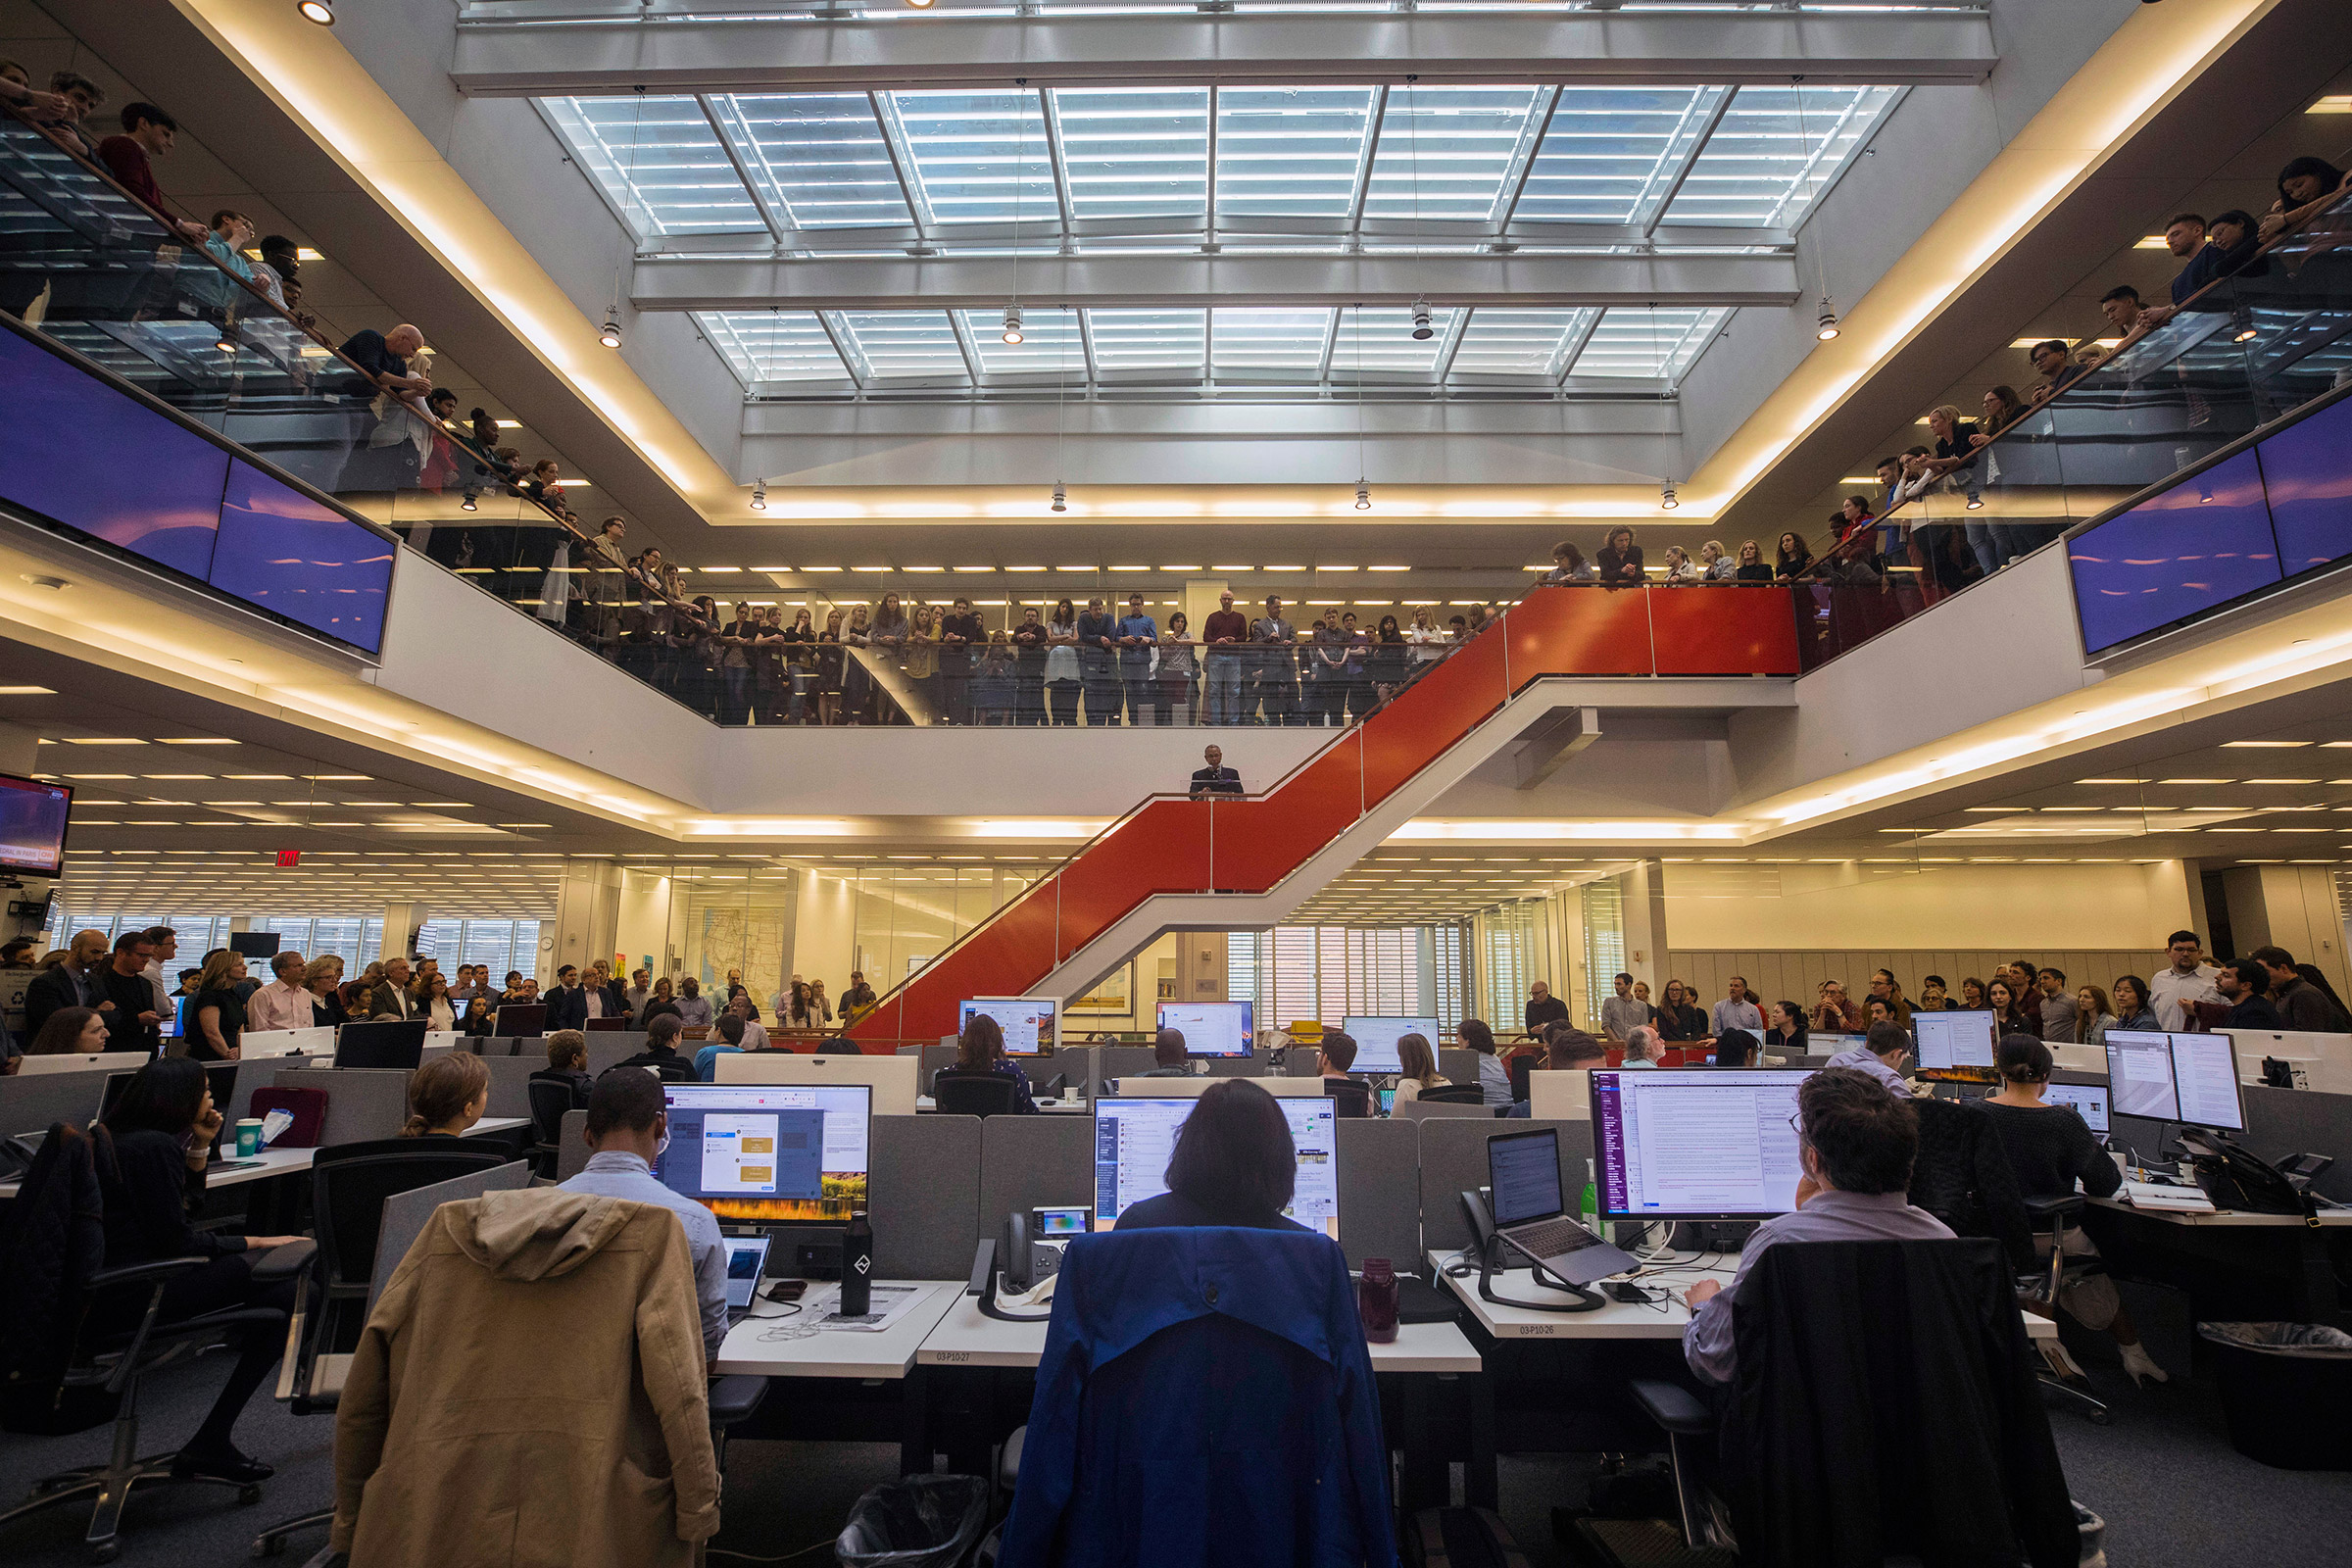 The newsroom gathers in April for Pulitzer announcements